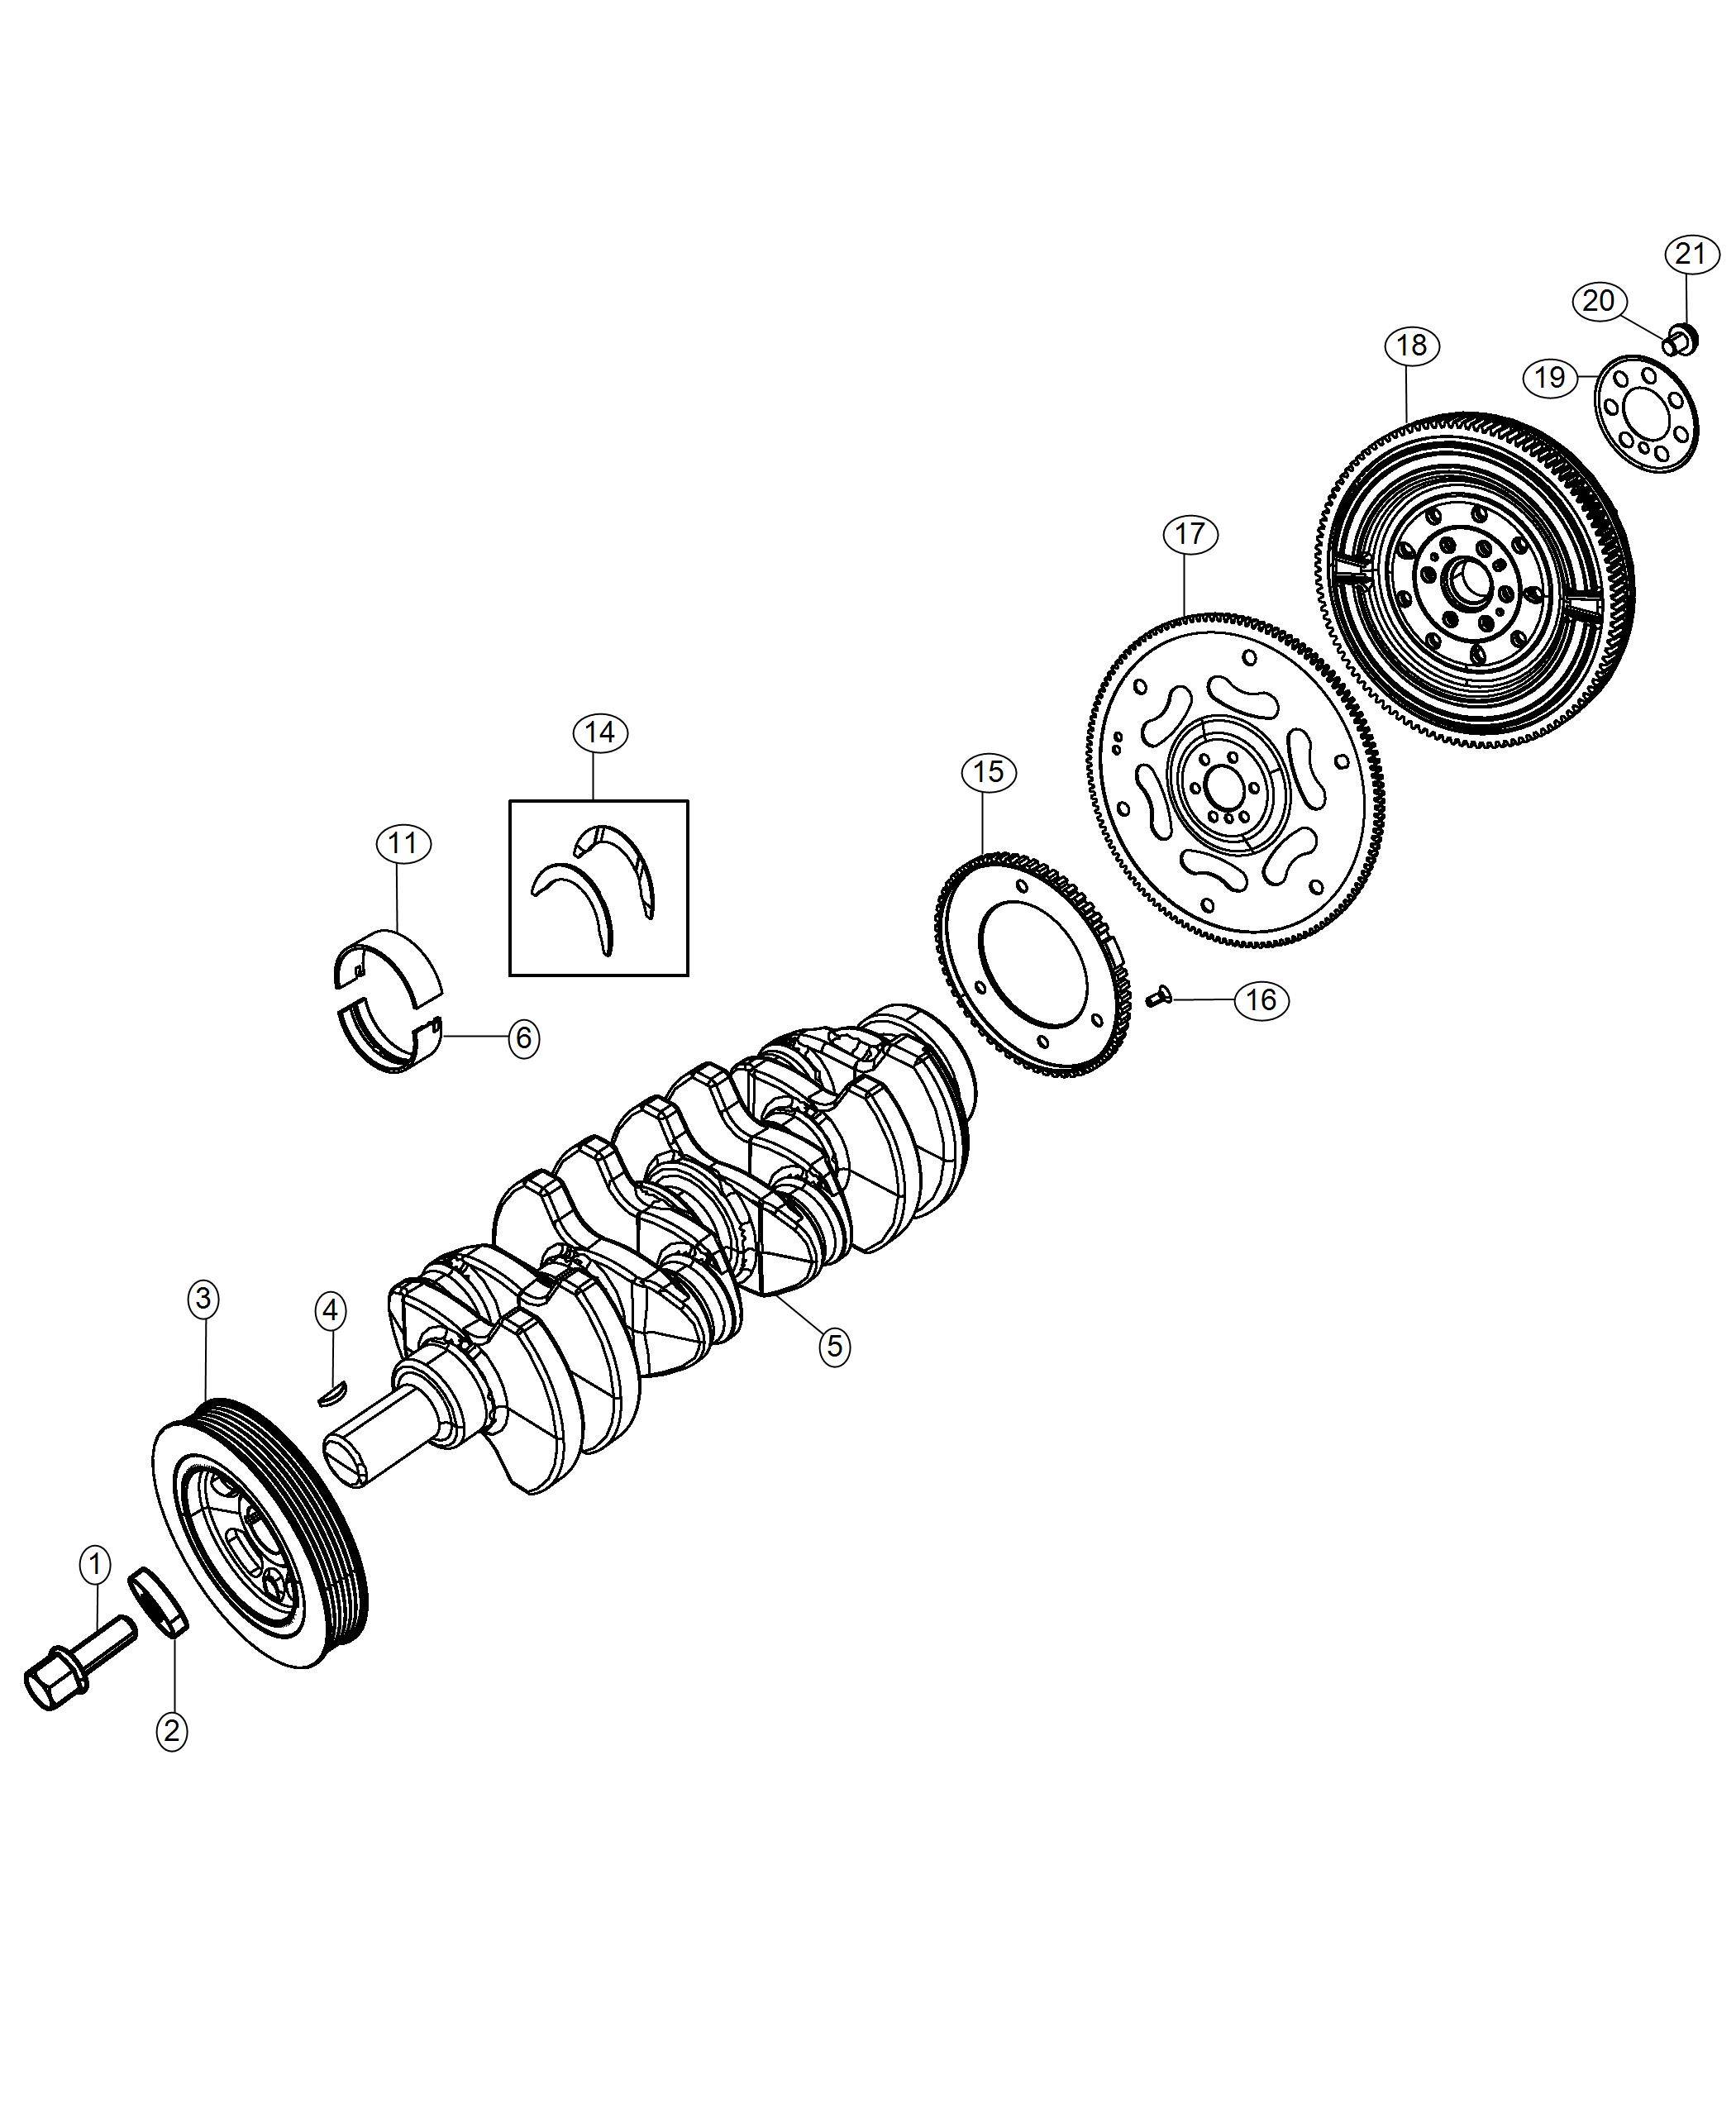 Jeep Compass Flywheel. [6-speed c635 manual transmission